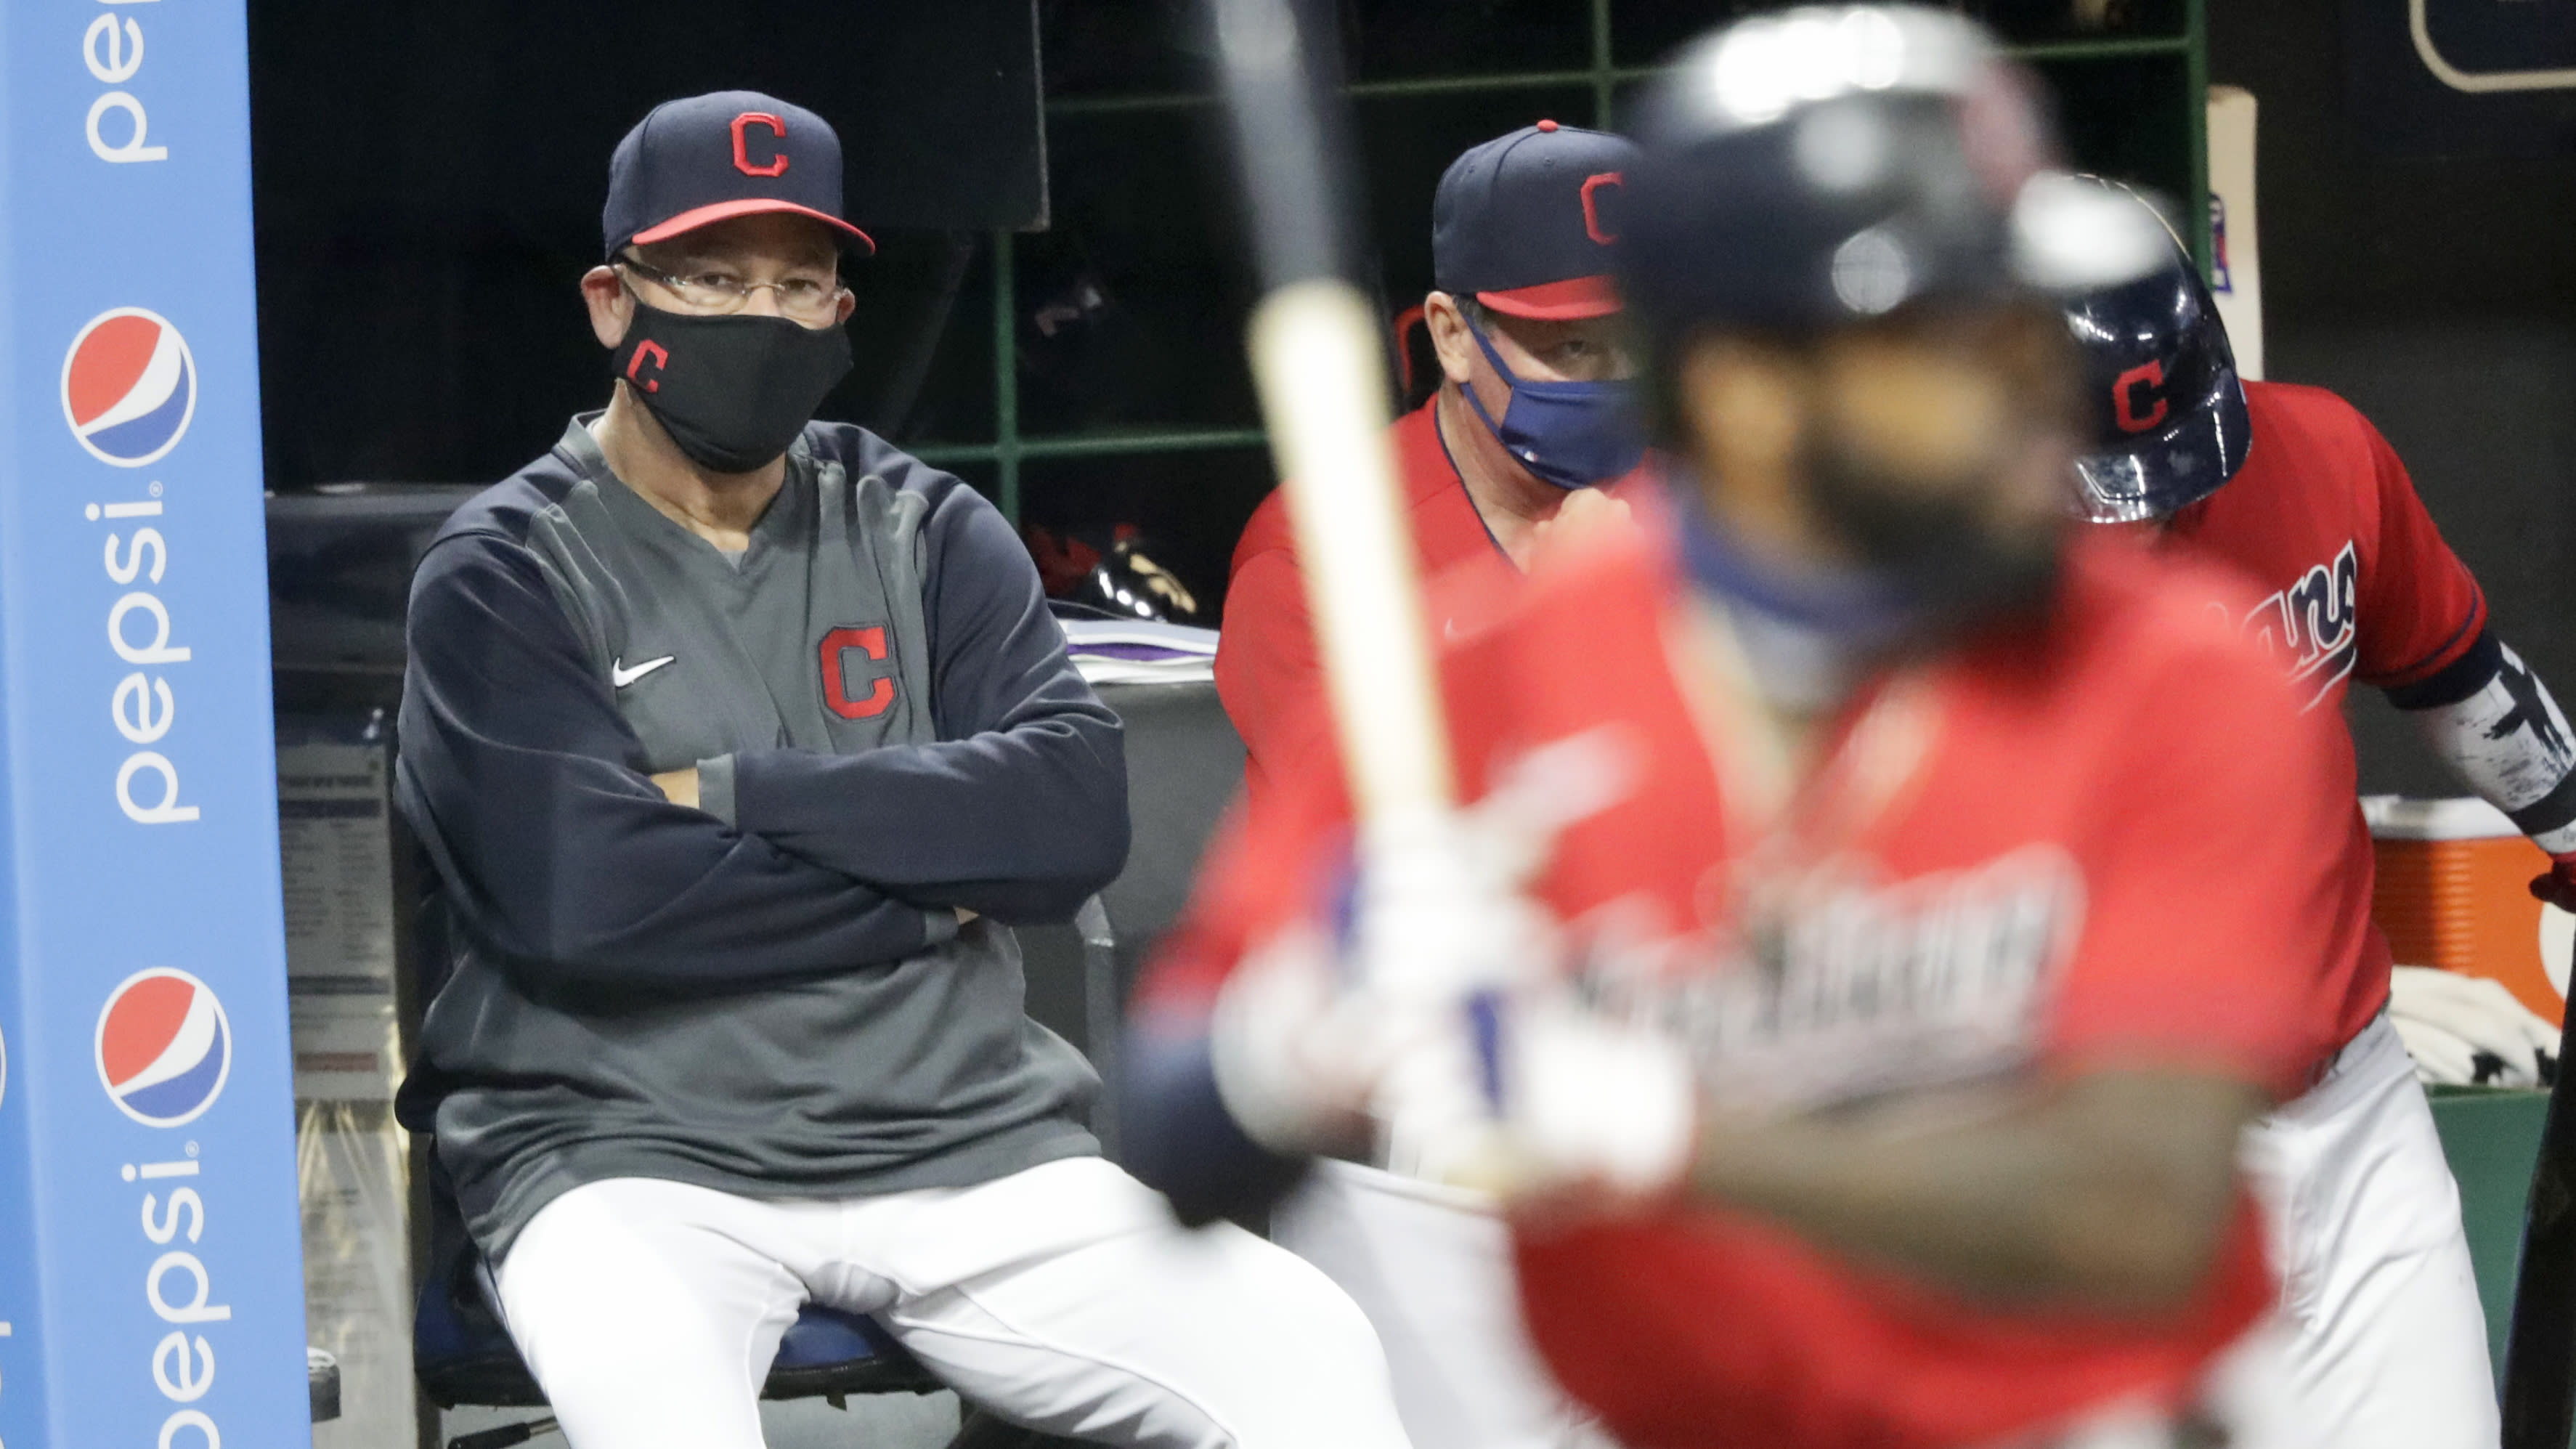 Cleveland Indians manager Terry Francona, left, watches as Cleveland Indians' Delino DeShields bats in the fifth inning in a baseball game against the Chicago Cubs, Tuesday, Aug. 11, 2020, in Cleveland. (AP Photo/Tony Dejak)